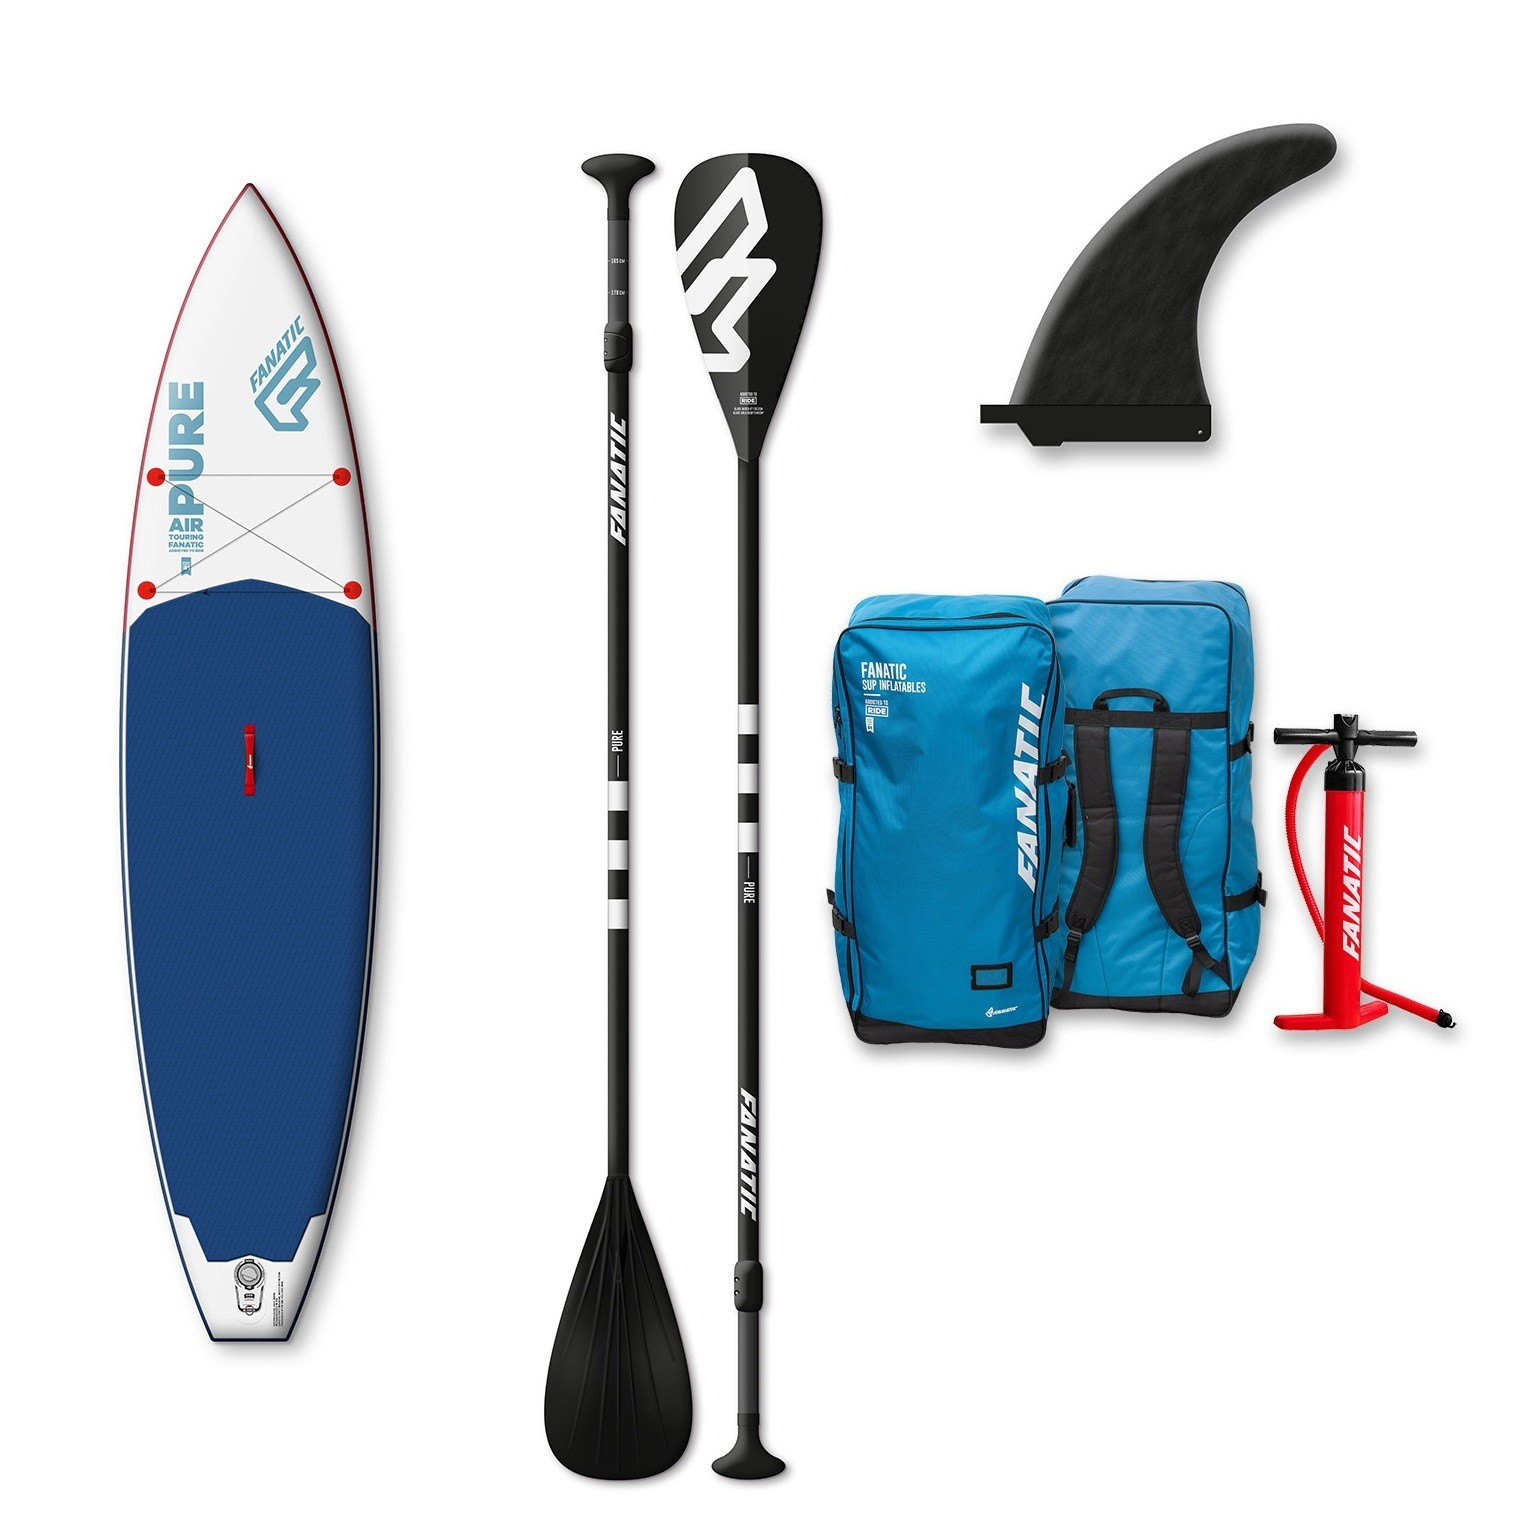 Fanatic Sup Pure Air Touring 11.6 compleet